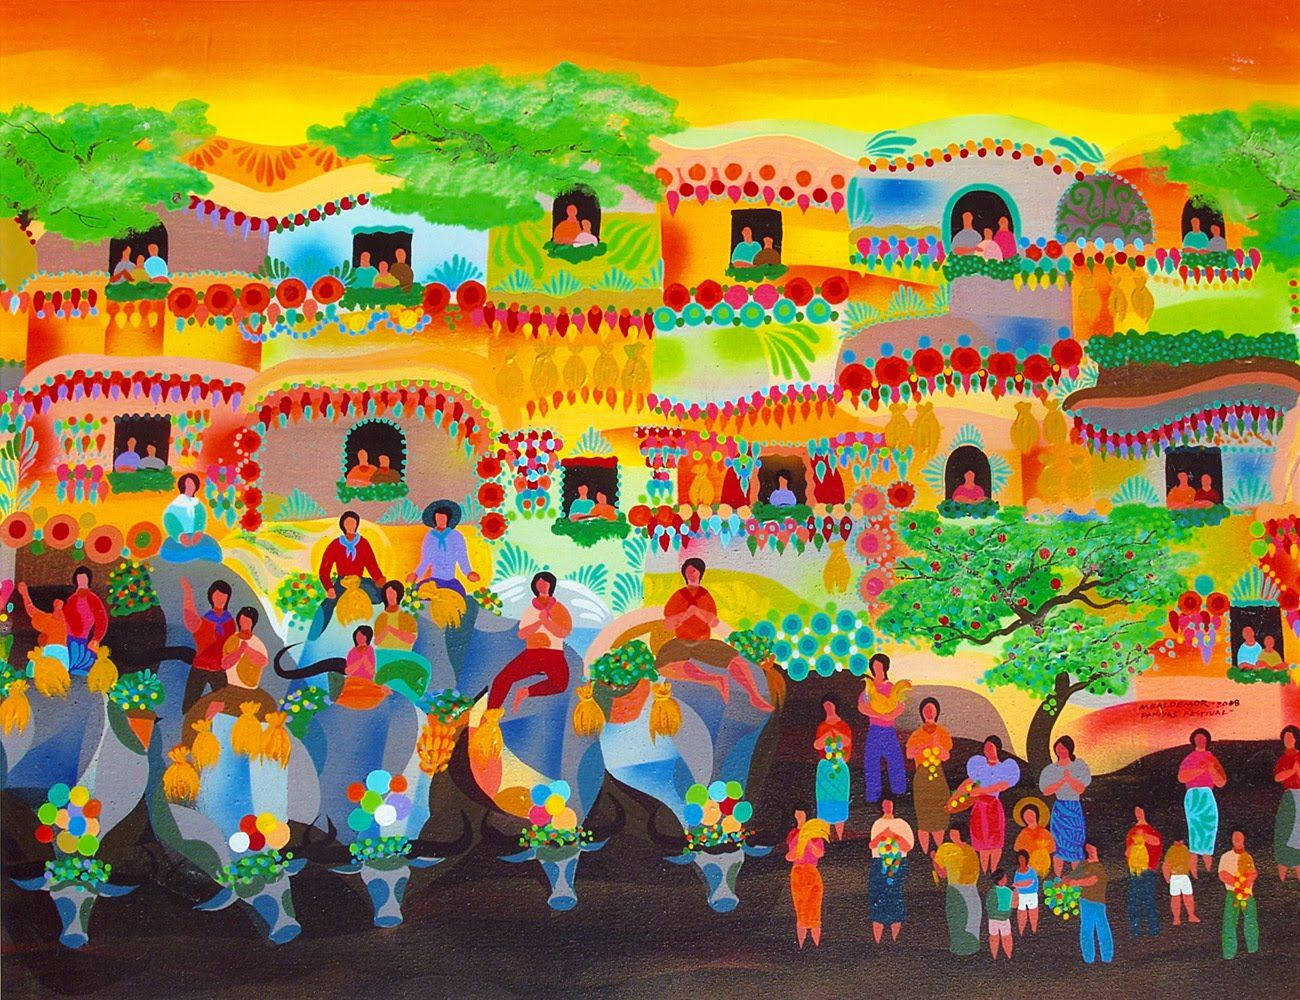 The Pahiyas Festival is one of my favorite paintings from